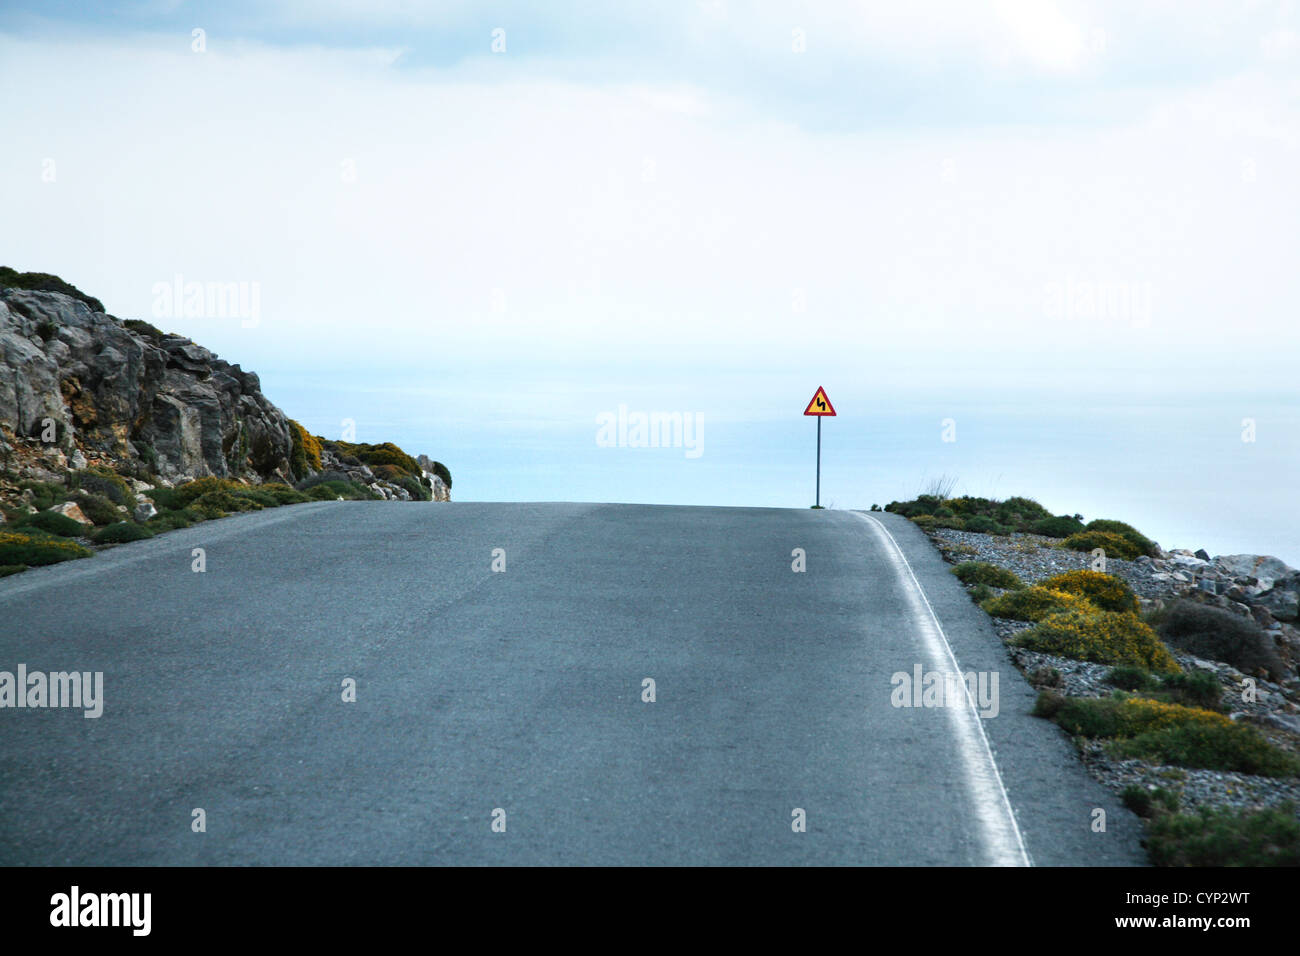 road sign of dangerous curve at crete greece Stock Photo